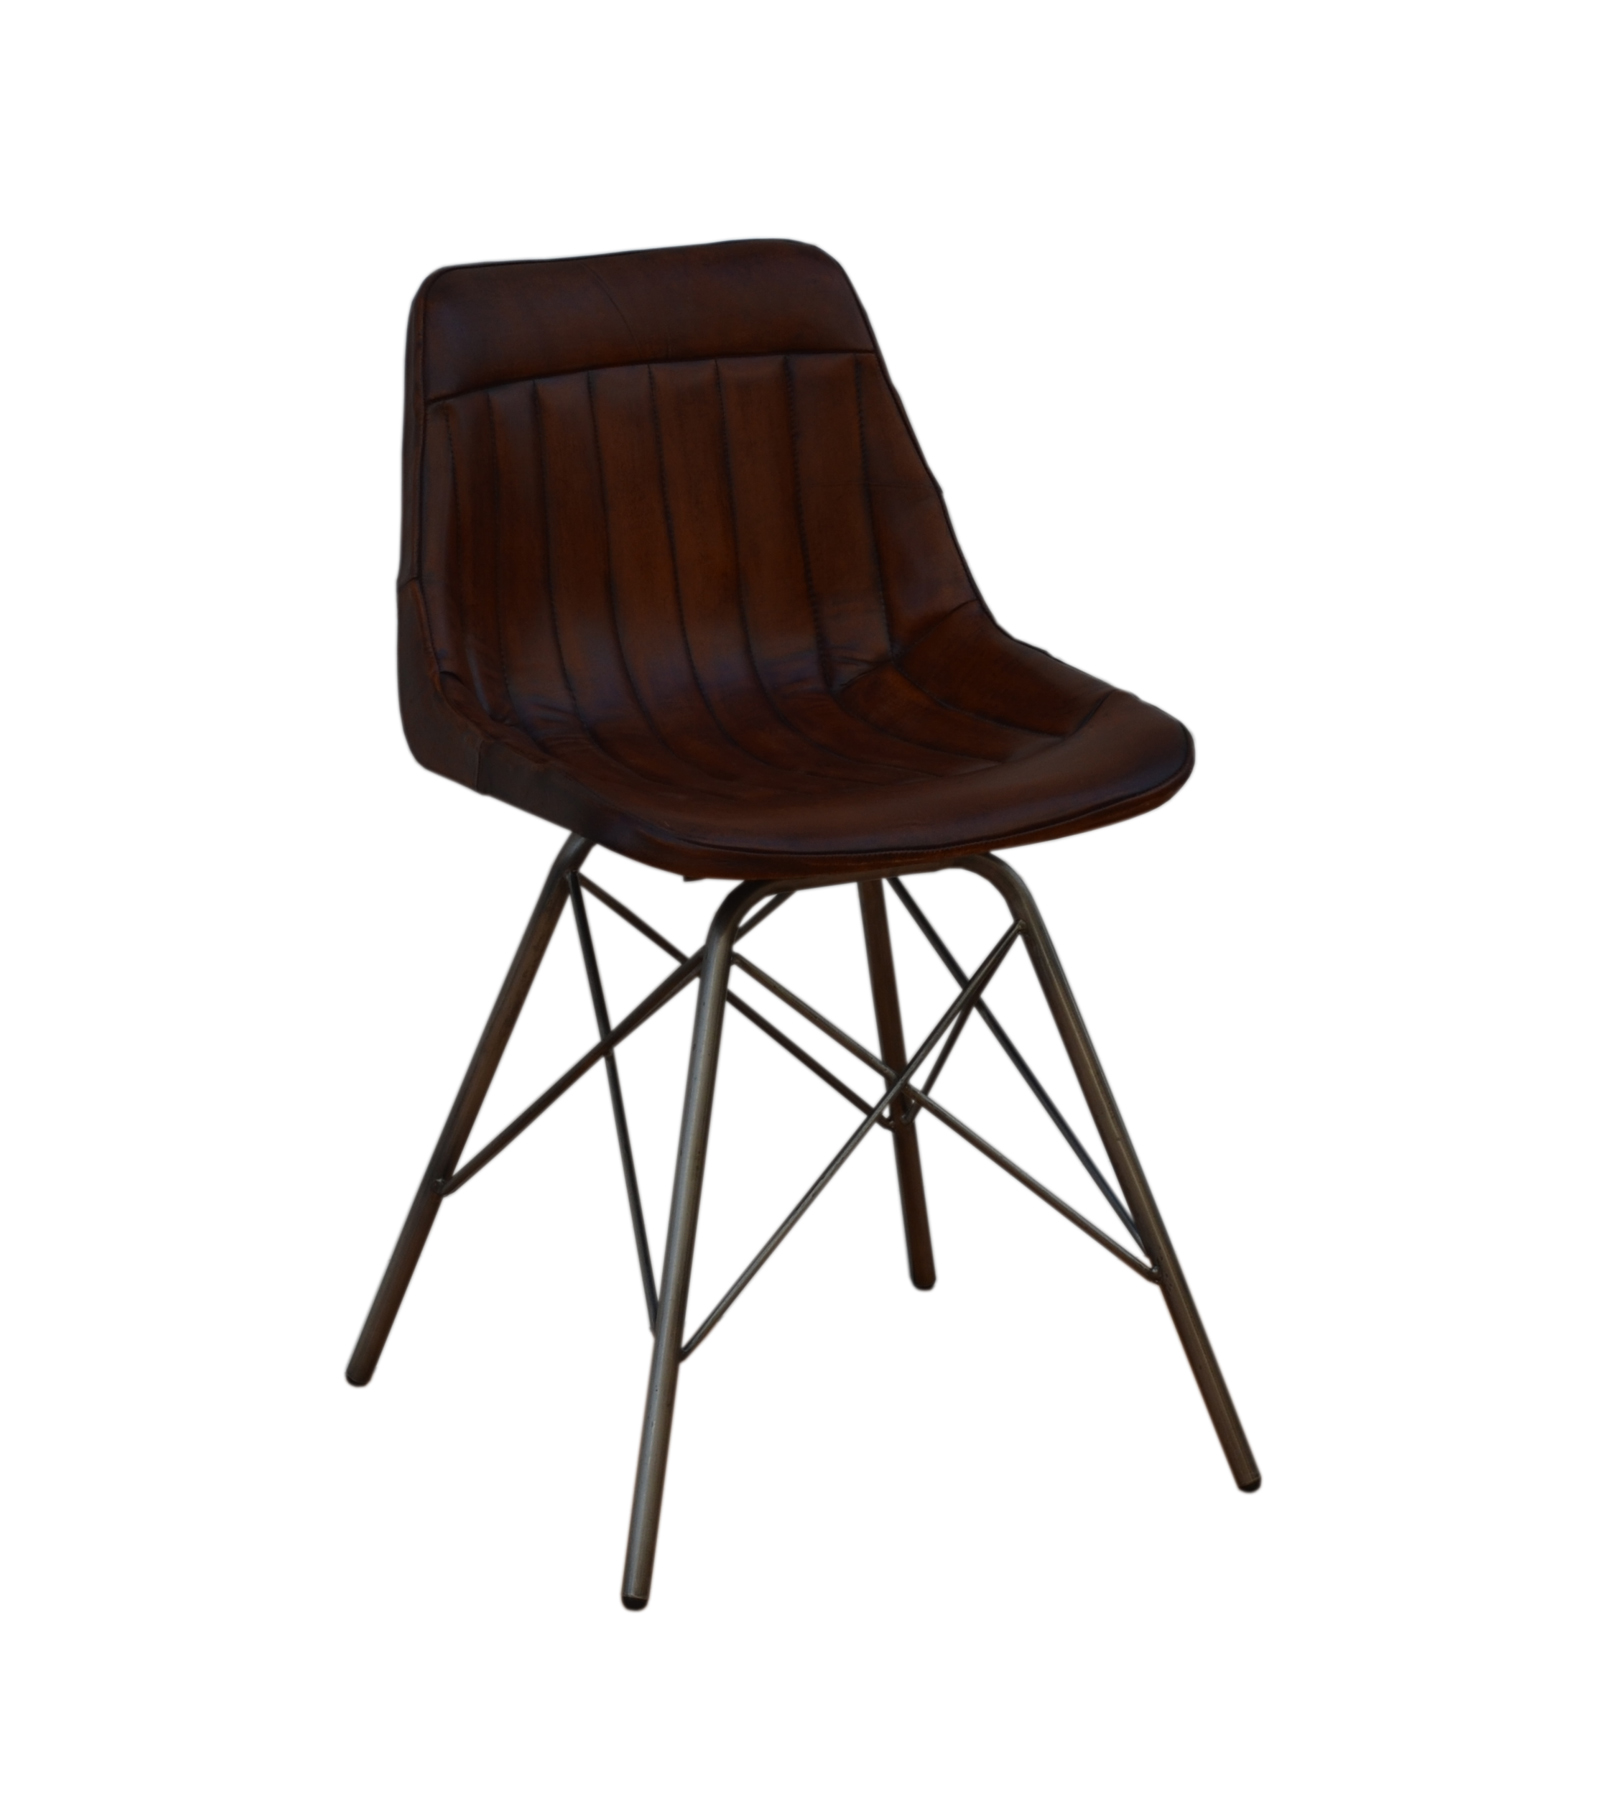 Santa-barbara-design-center-stand-up-iron-chair-leather-furniture-dining-chair-bar-stool-interior-design-home-decor-chair-sitting-seat